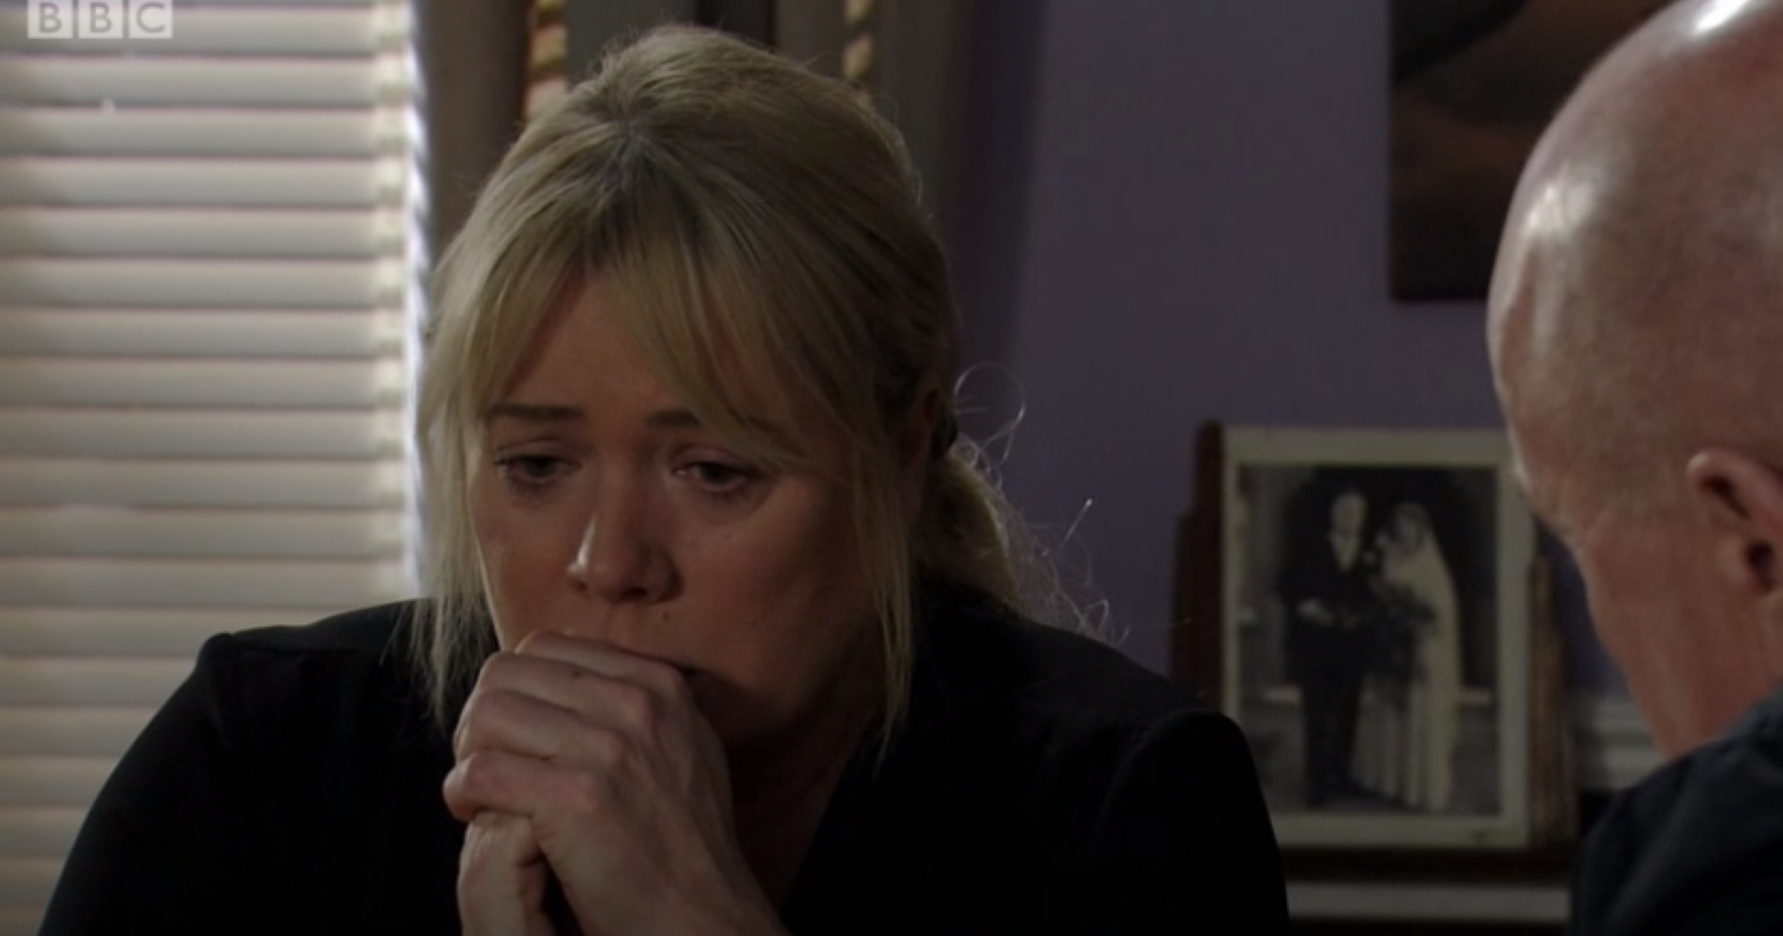 EastEnders SPOILERS: Sharon reconsiders giving up baby Kayden tonight